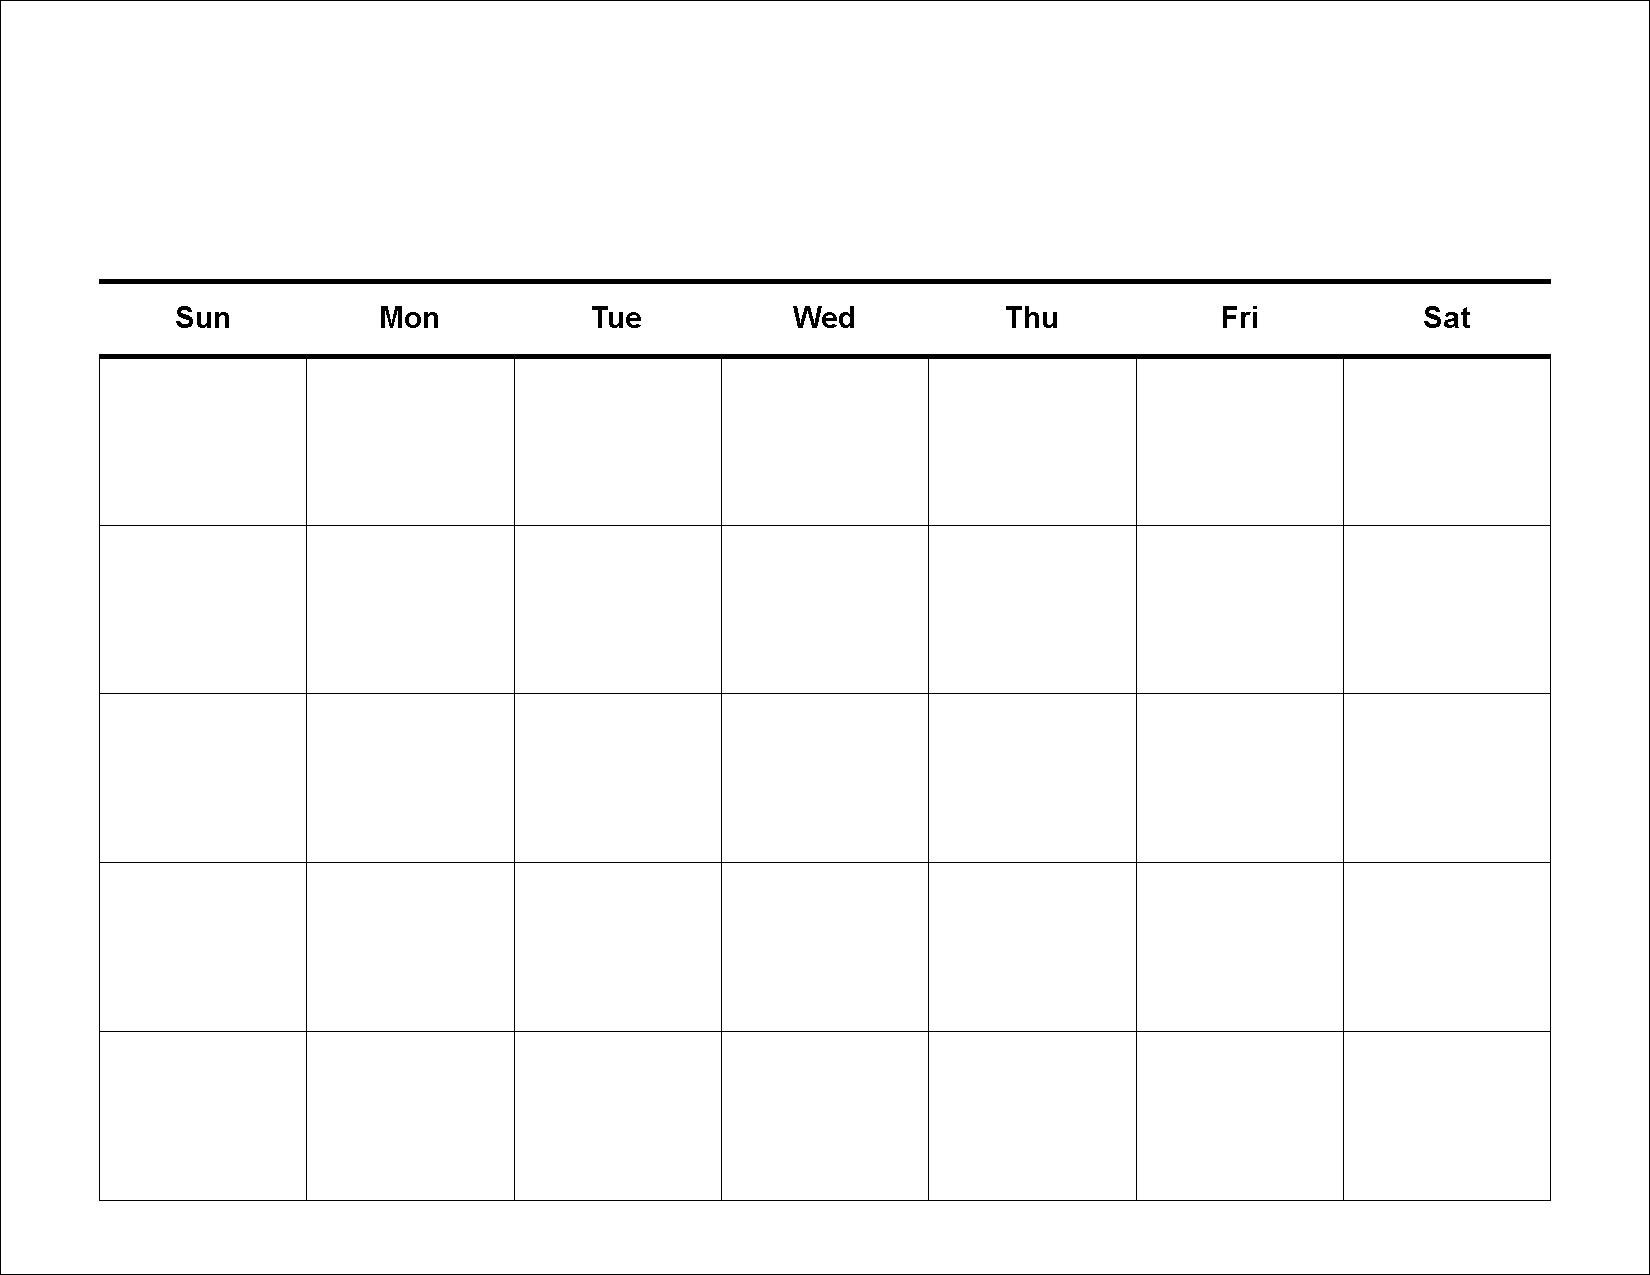 Blank 5 Day Week Calendar | Template Calendar Printable inside Printable 5 Day Working Week Calendar